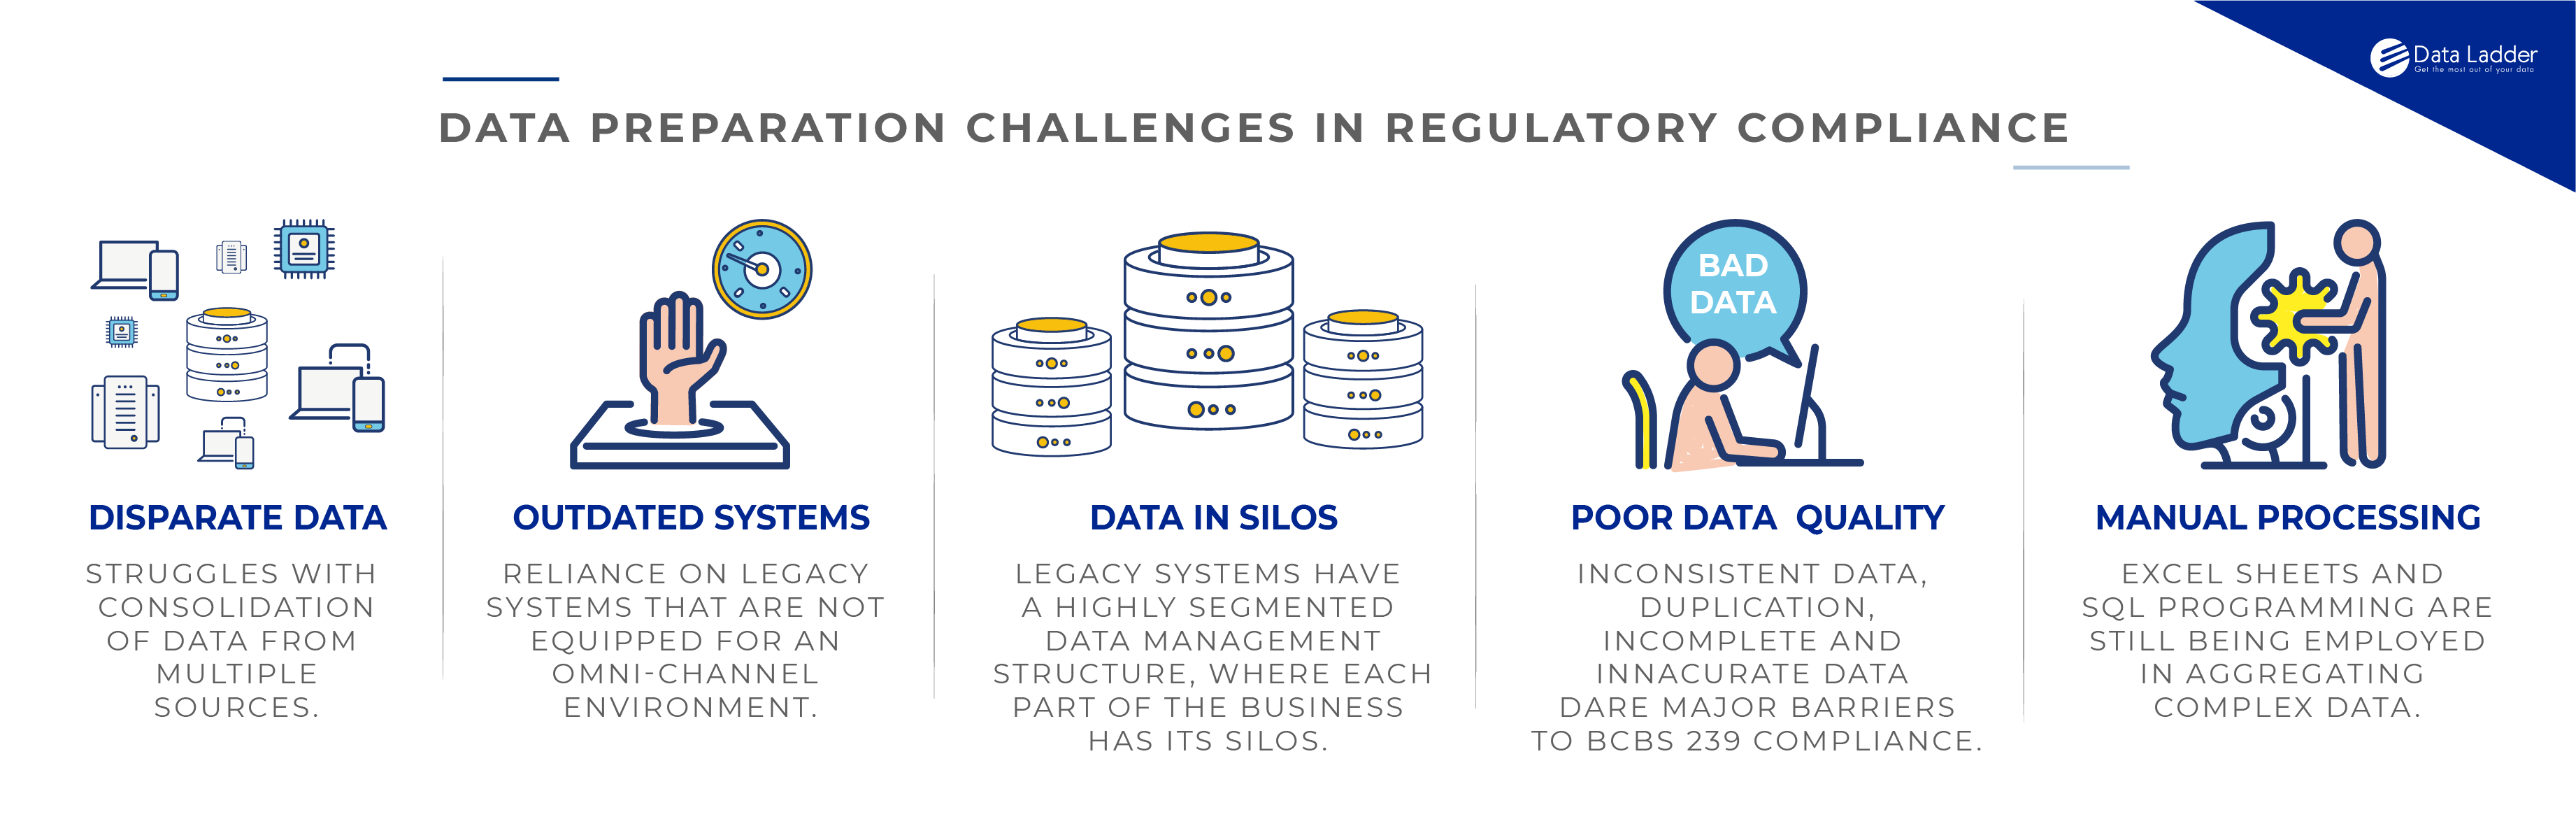 data preparation software, Why Banks Need Powerful, Agile Data Preparation Solutions for Accurate and Timely Regulatory Reporting